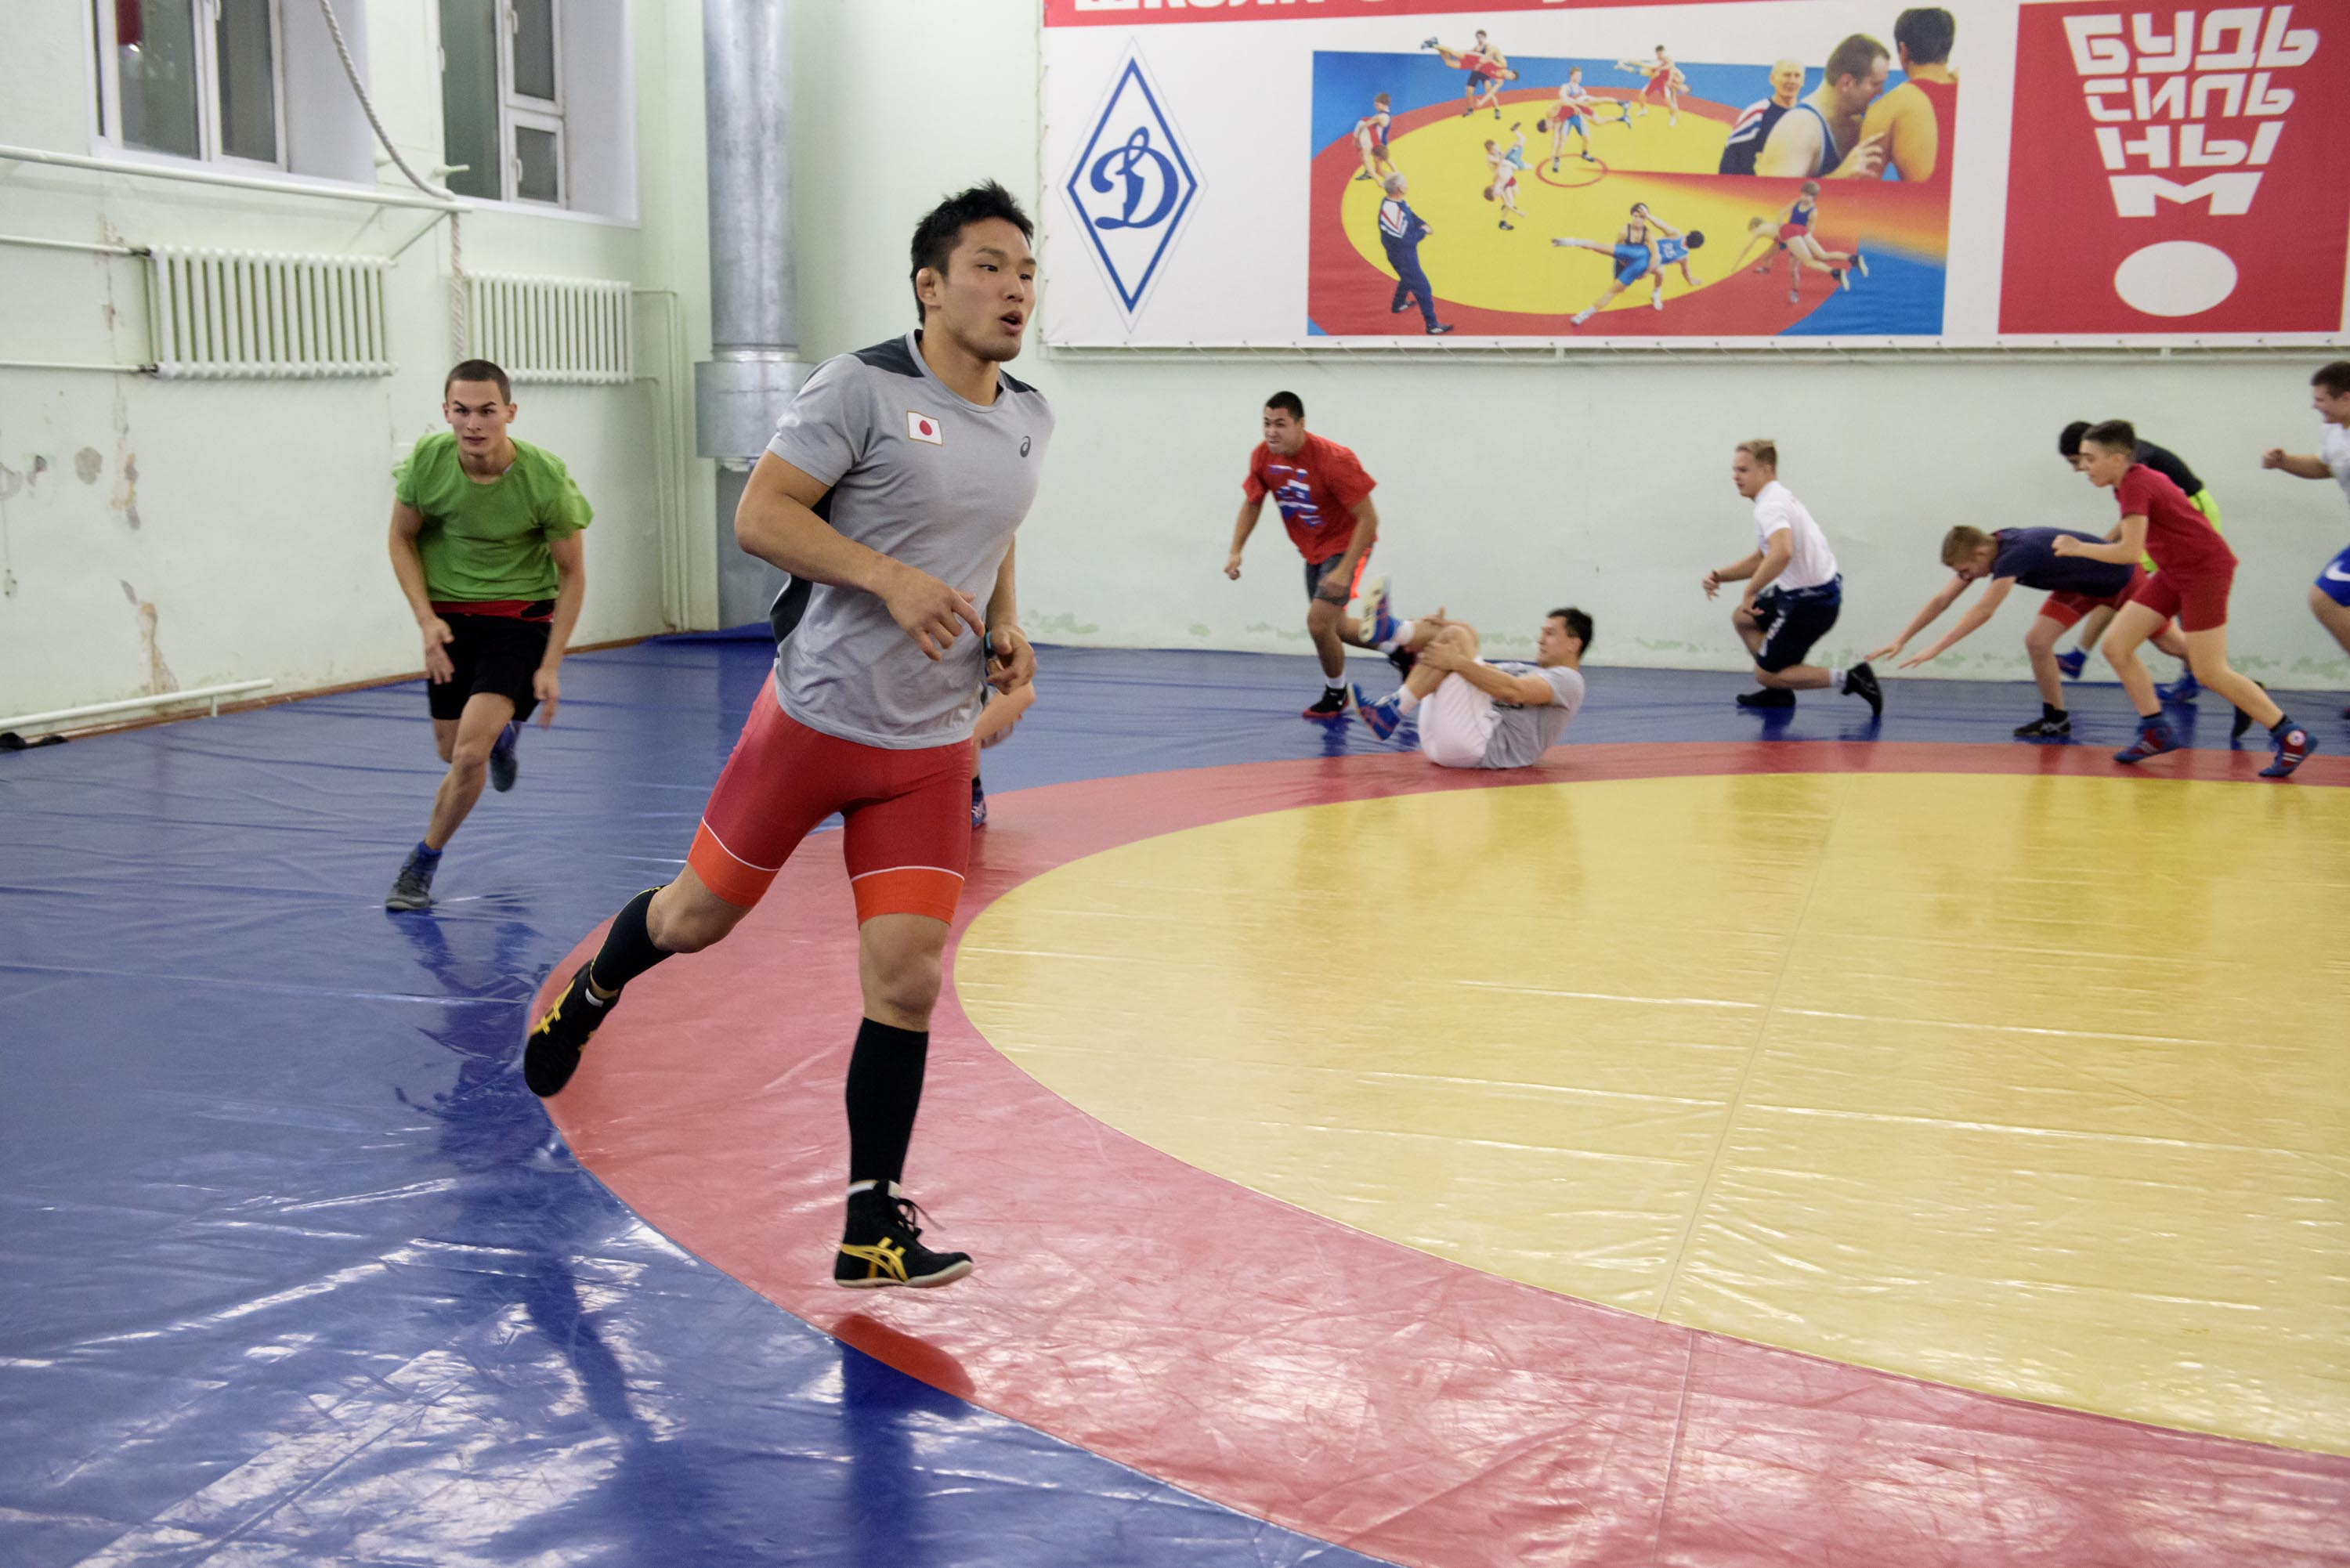 Training with Roman Vlasov and Takeshi Izumi Dinamo Club 04.11.2018 3000 102